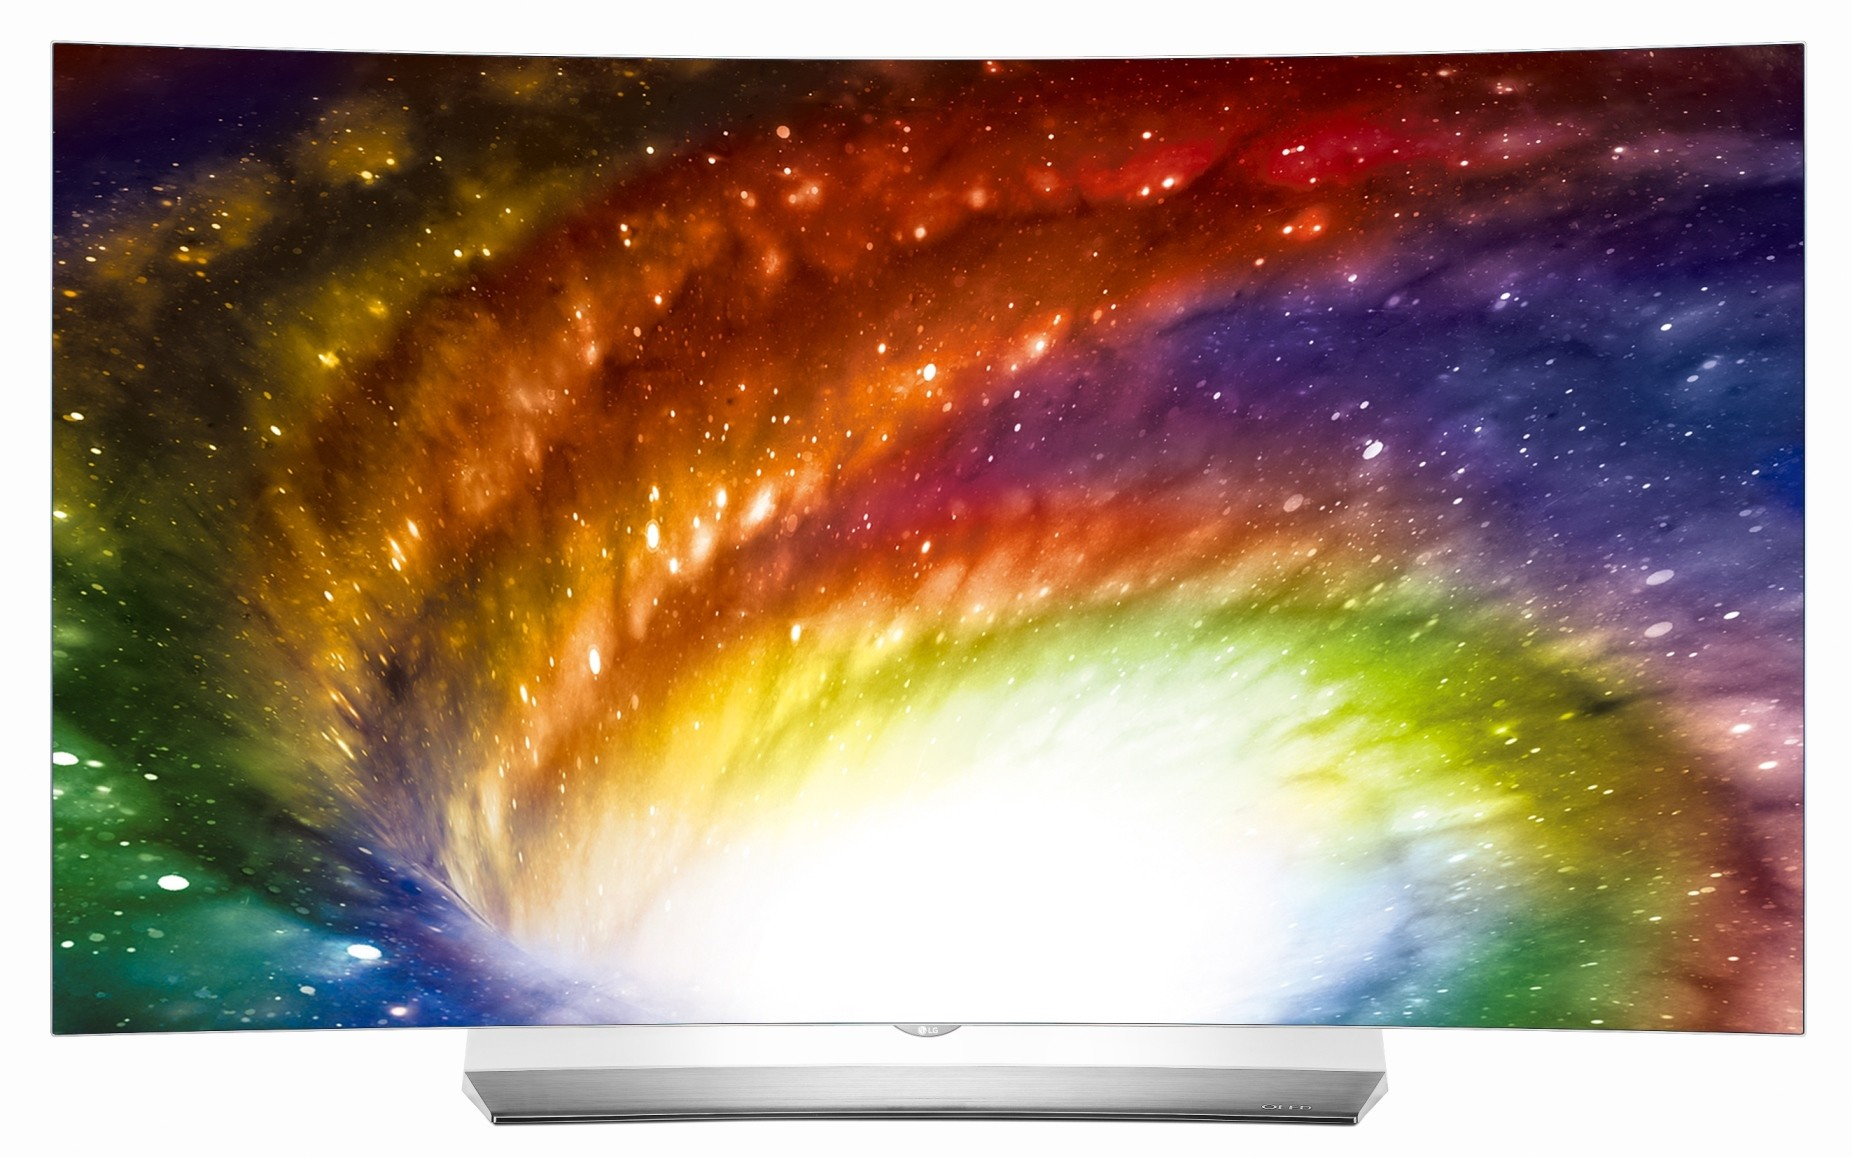 Front view of one of LG's TVs, model OLED55C6K, displaying colorful imagery to commemorate the new partnership between LG and Bang & Olufsen